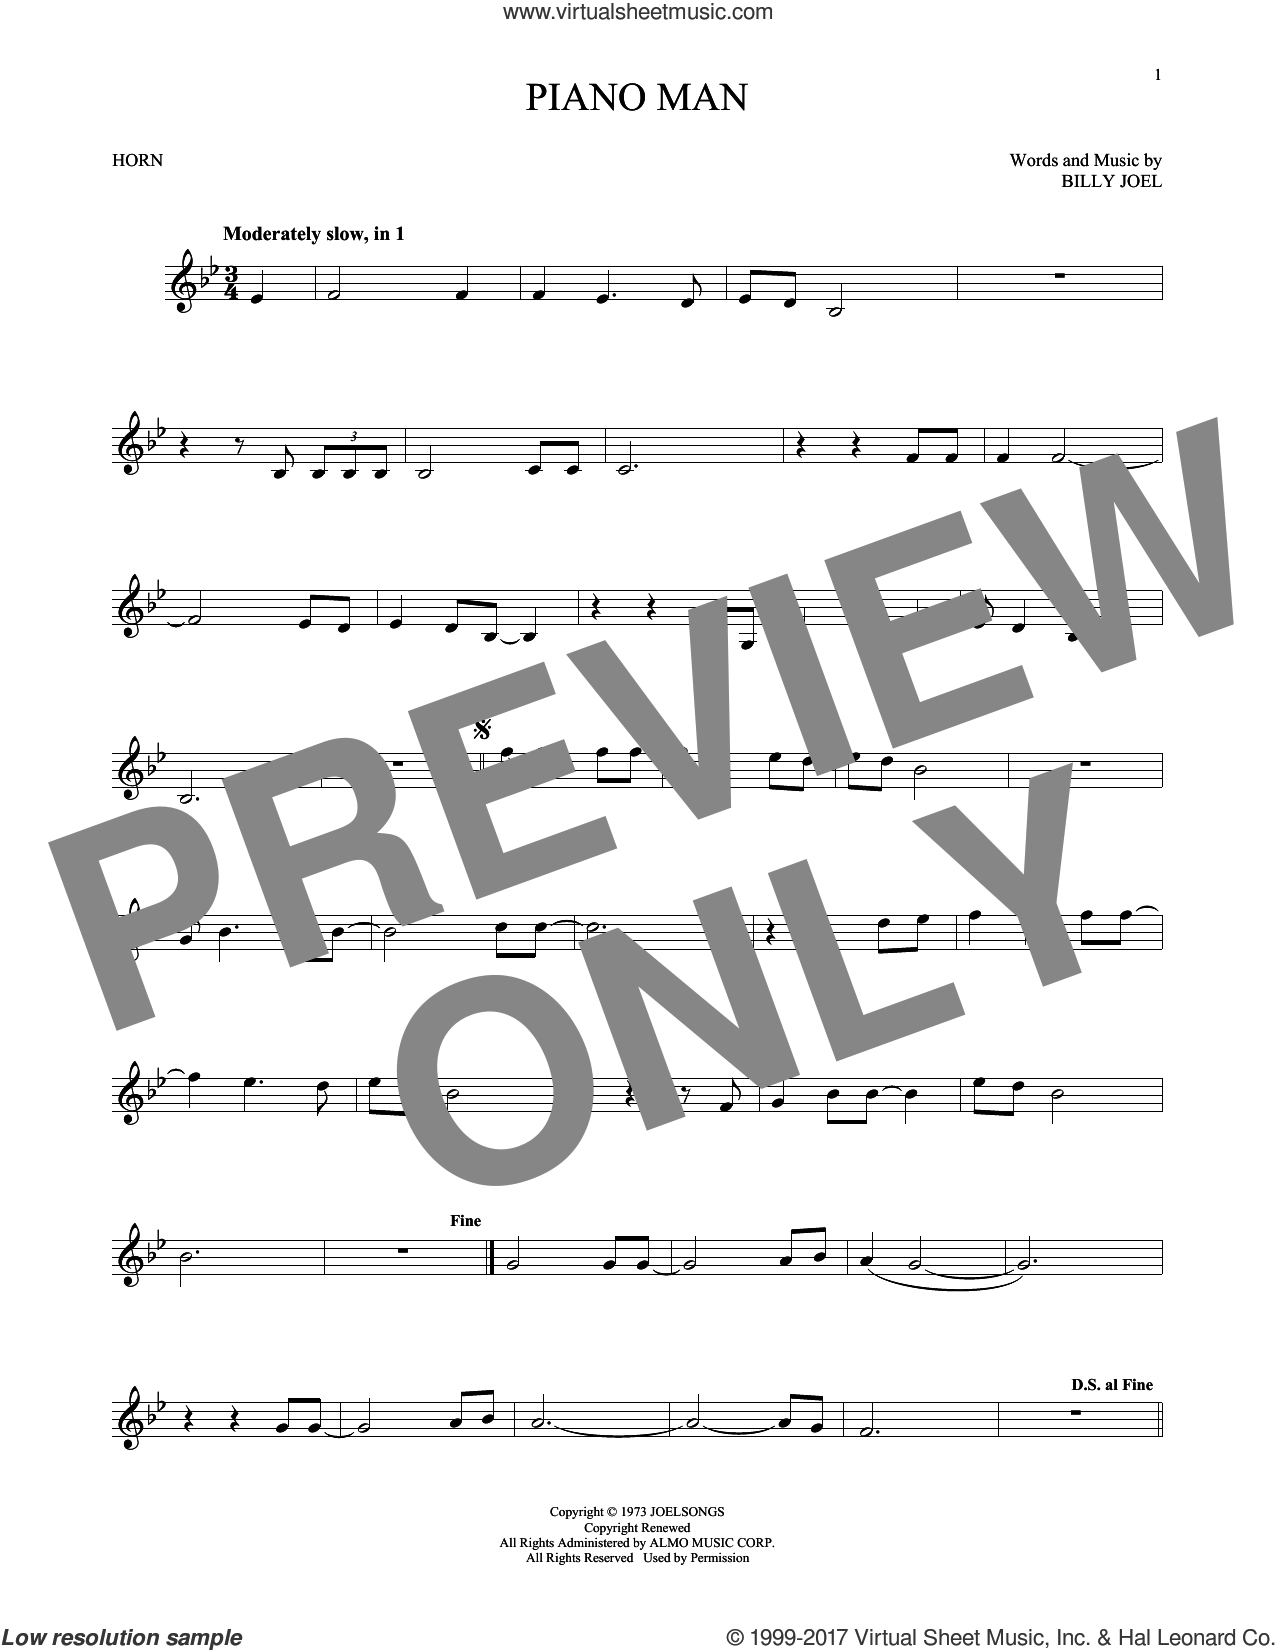 Piano Man sheet music for horn solo by Billy Joel, intermediate skill level